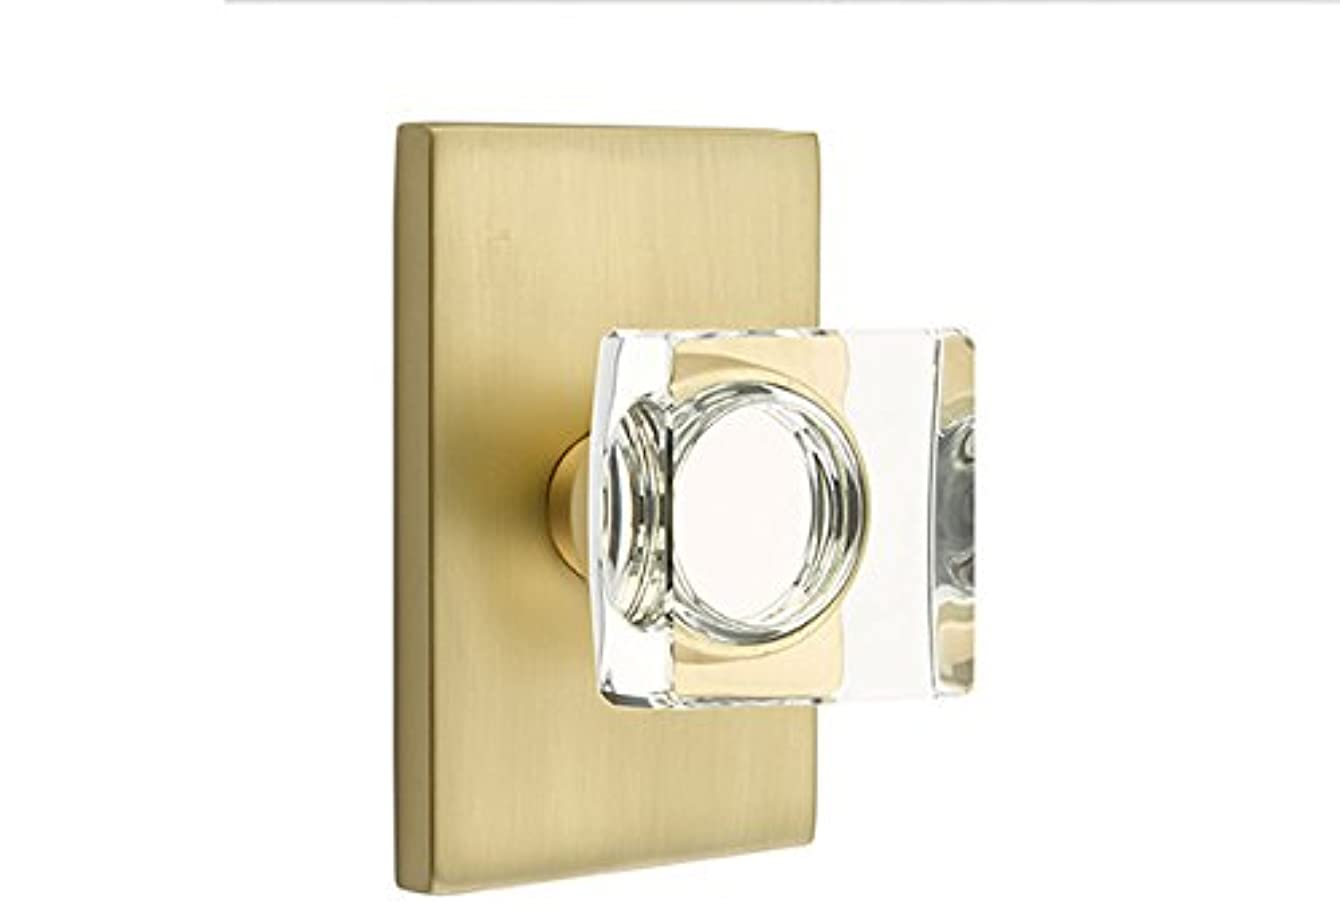 Privacy Set, Modern Rectangle Rosette, Modern Square Crystal Knob, Satin Brass